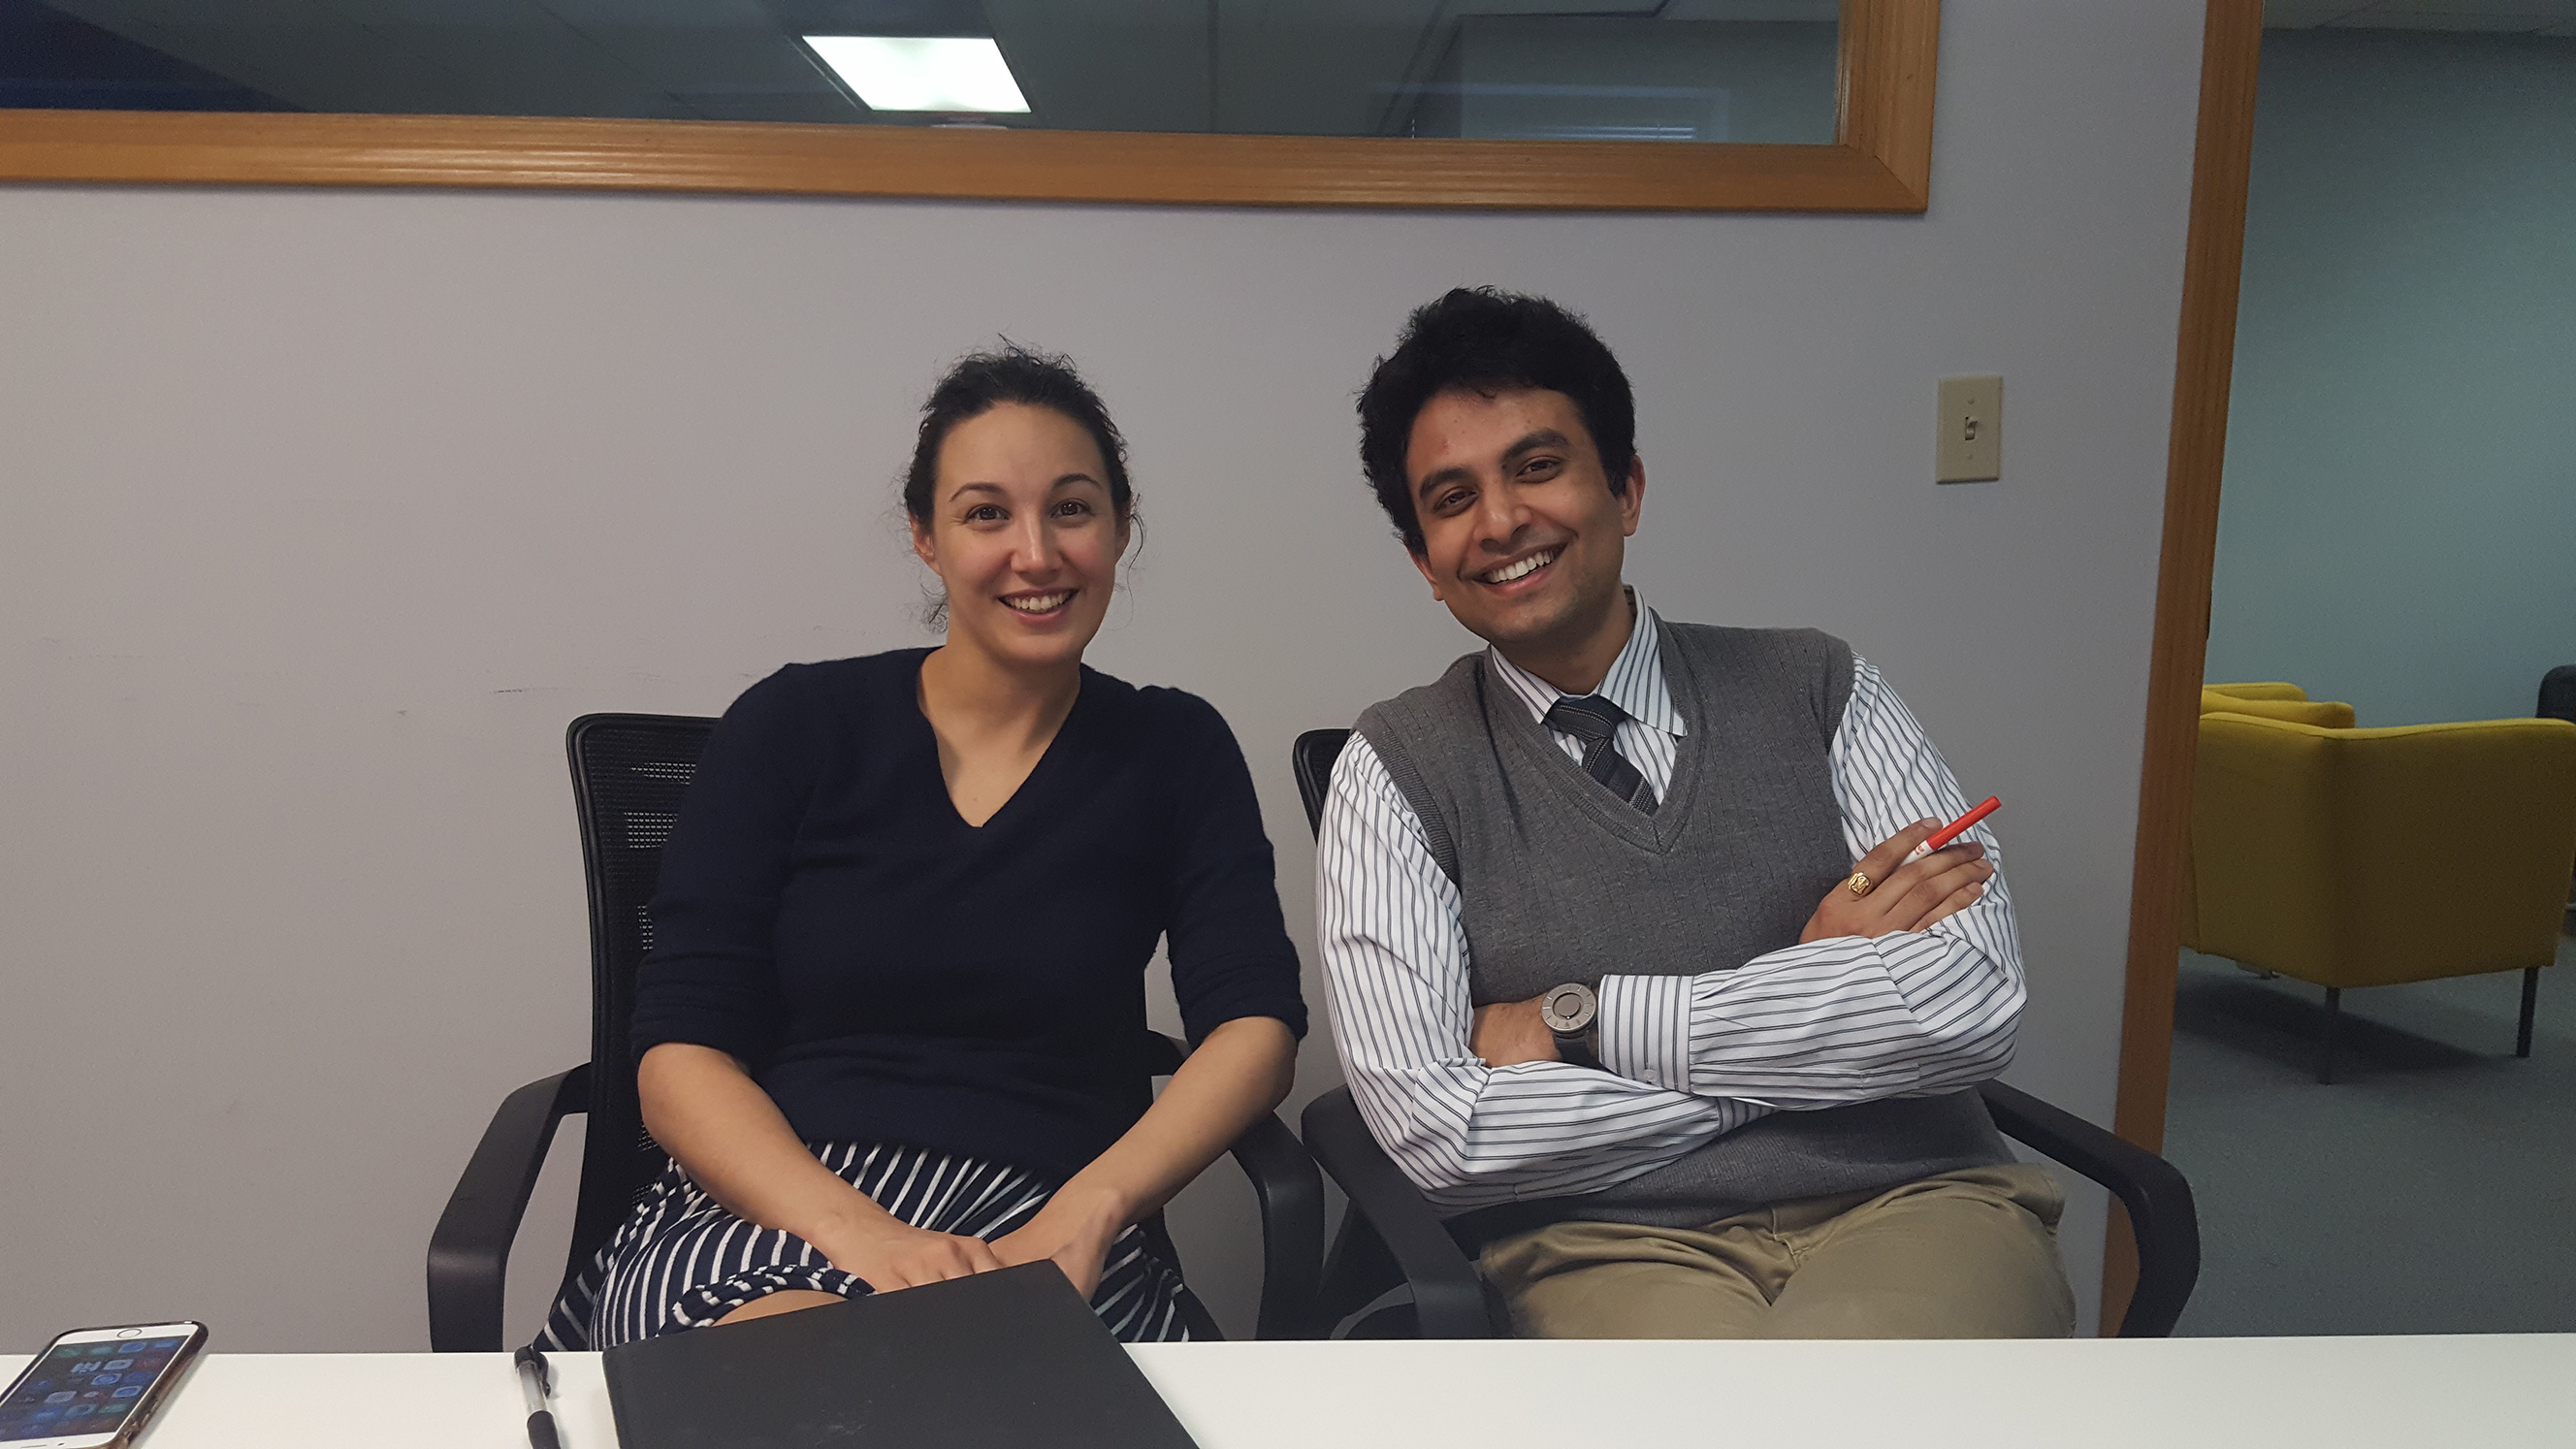 Katie Boody and Aditya Voleti of the Lean Lab in Kansas City